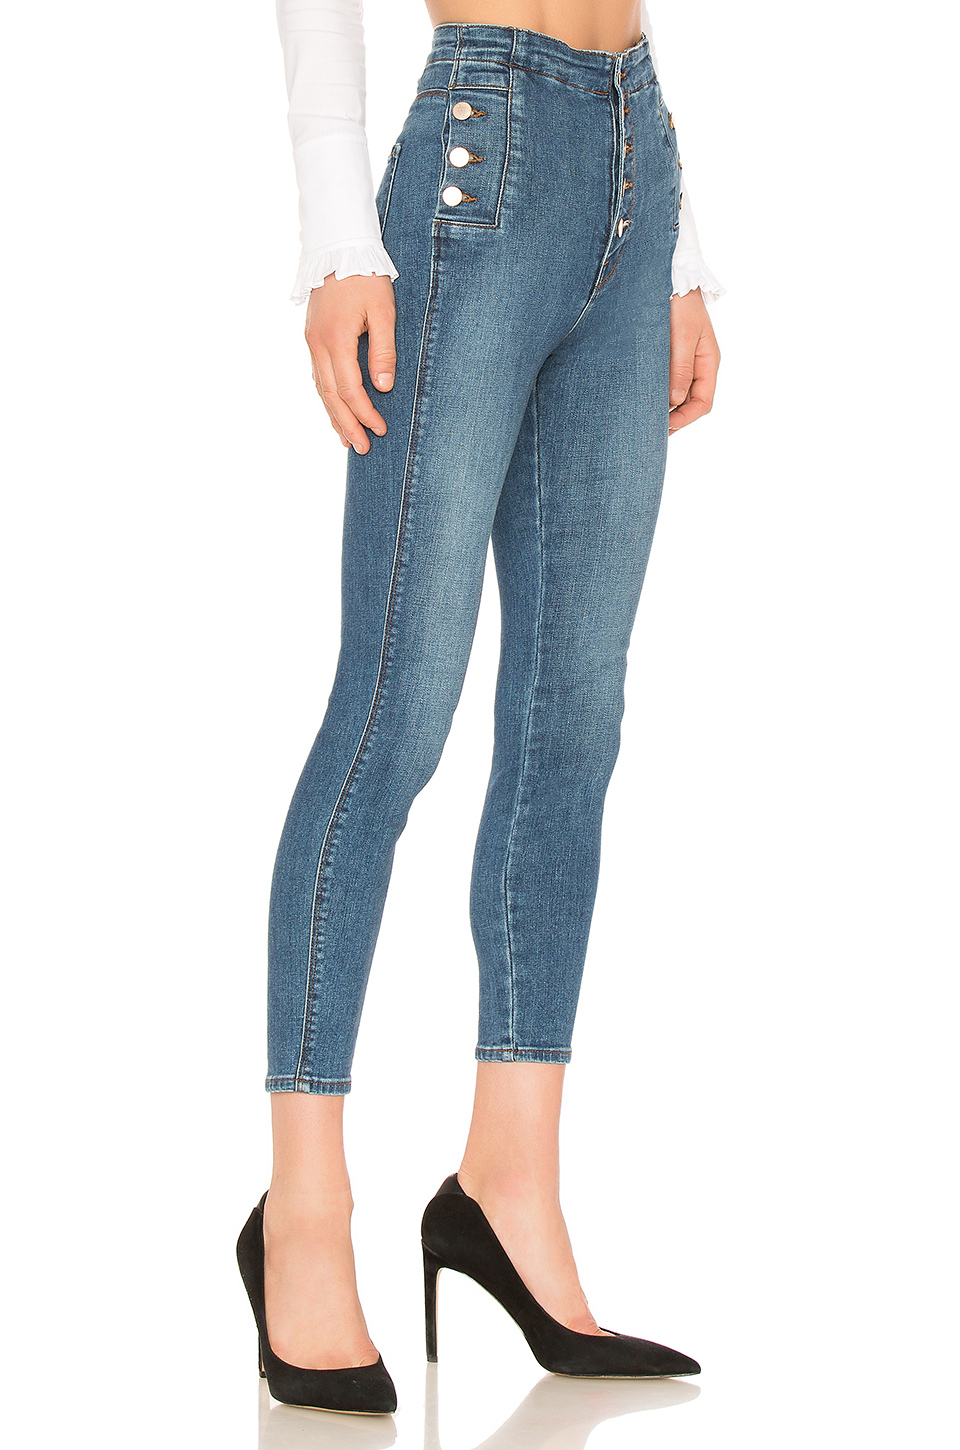 67a7864f434 Buy Original J Brand Natasha Sky High Skinny Cropped Jean at ...